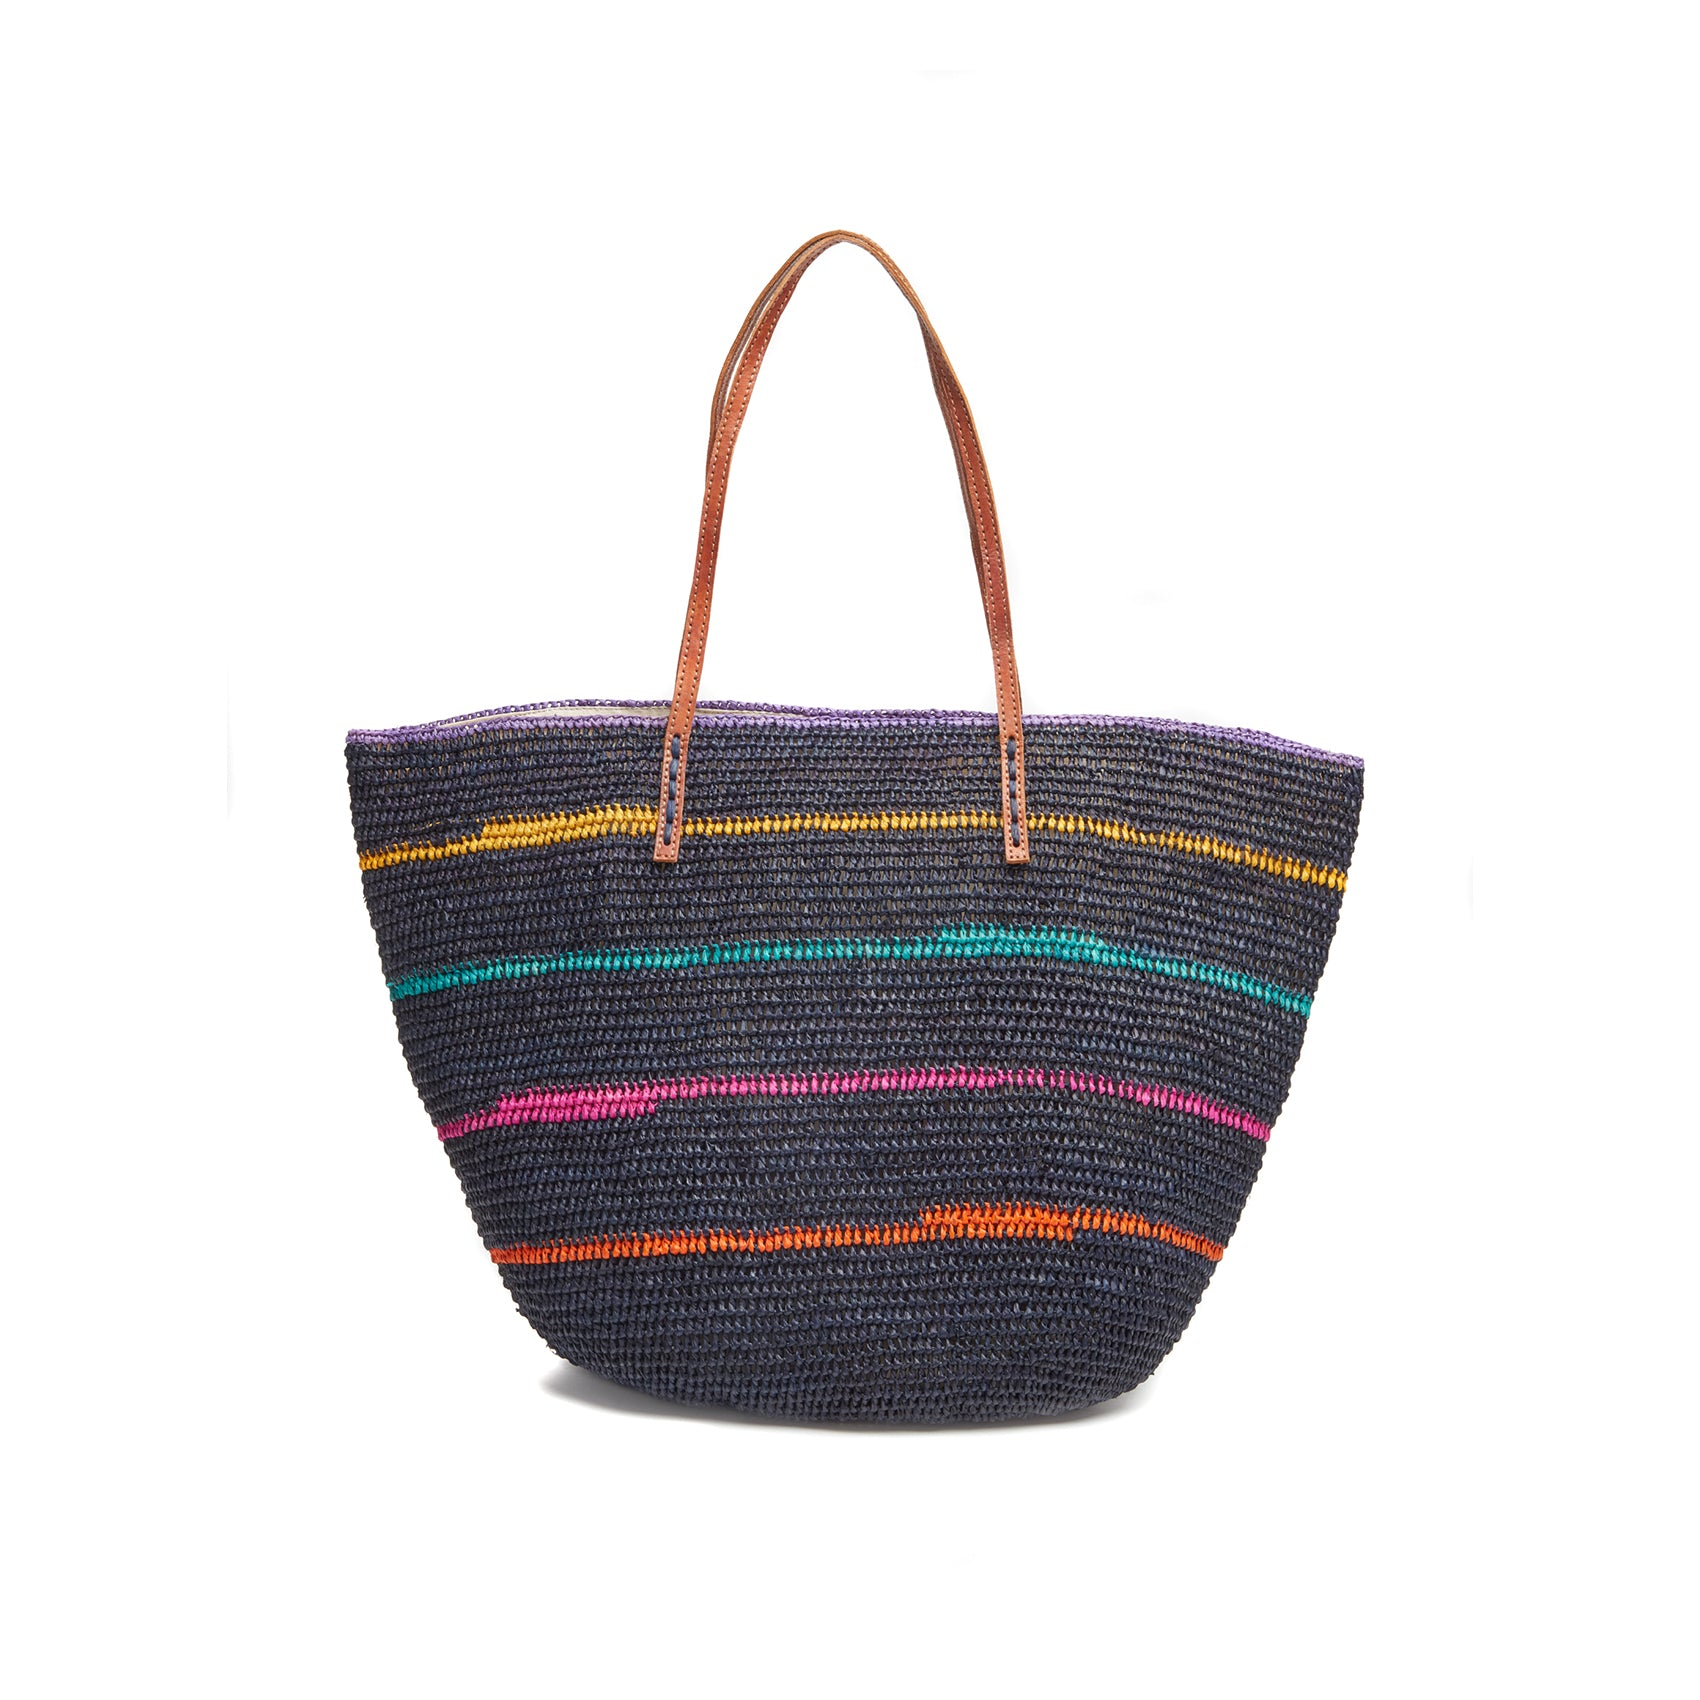 Cielo Navy Beach Tote Bag